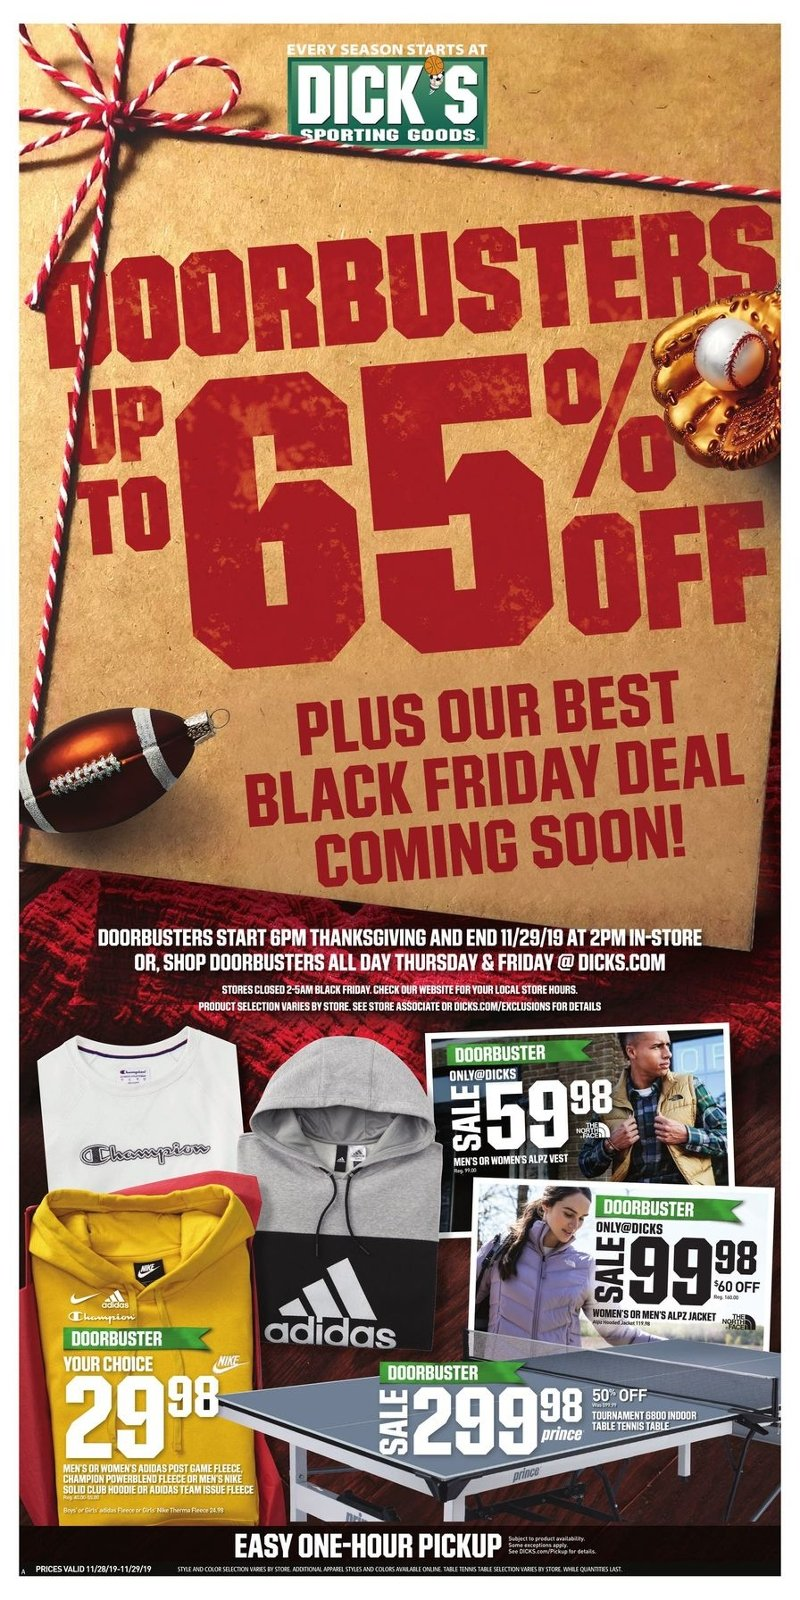 Dick's Sporting Goods Black Friday 2019 Page 1